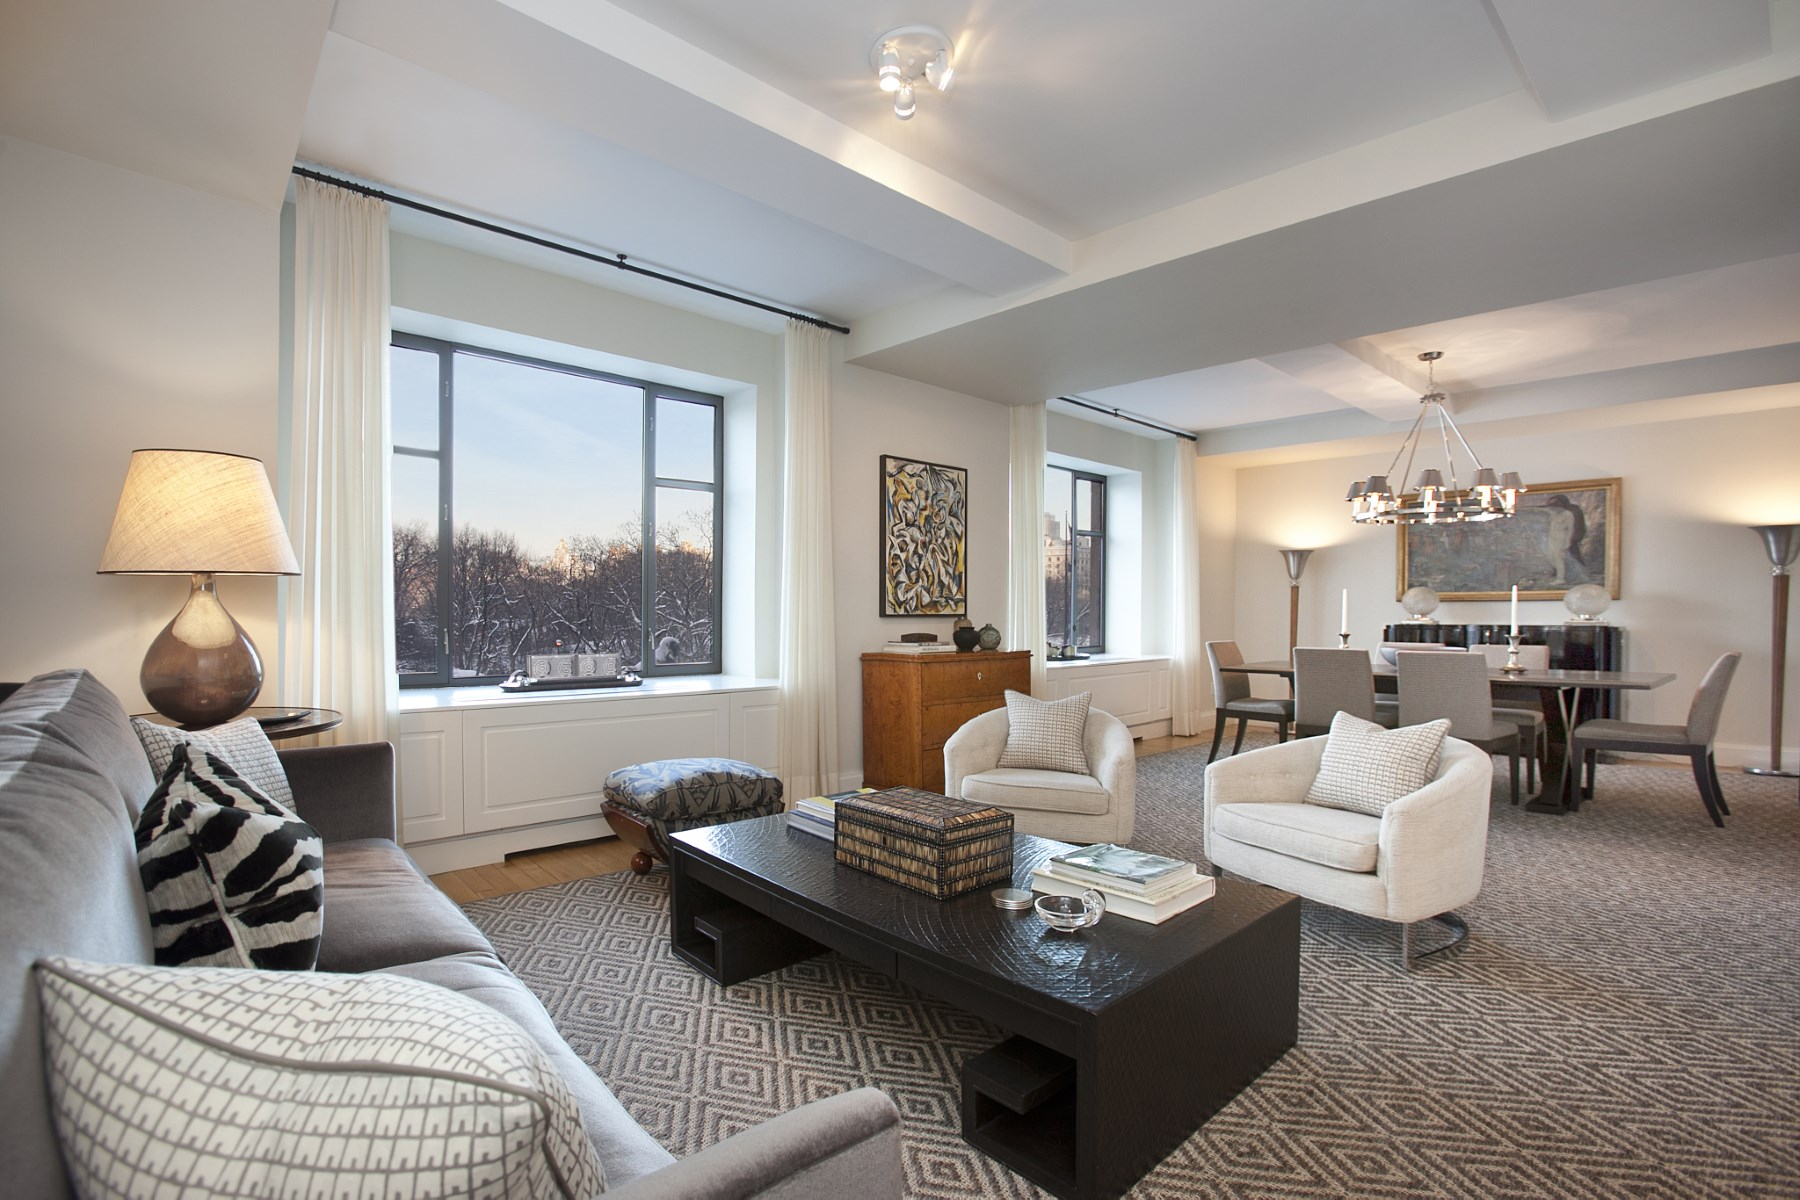 rentals property at 110 Central Park South, Apt 4A